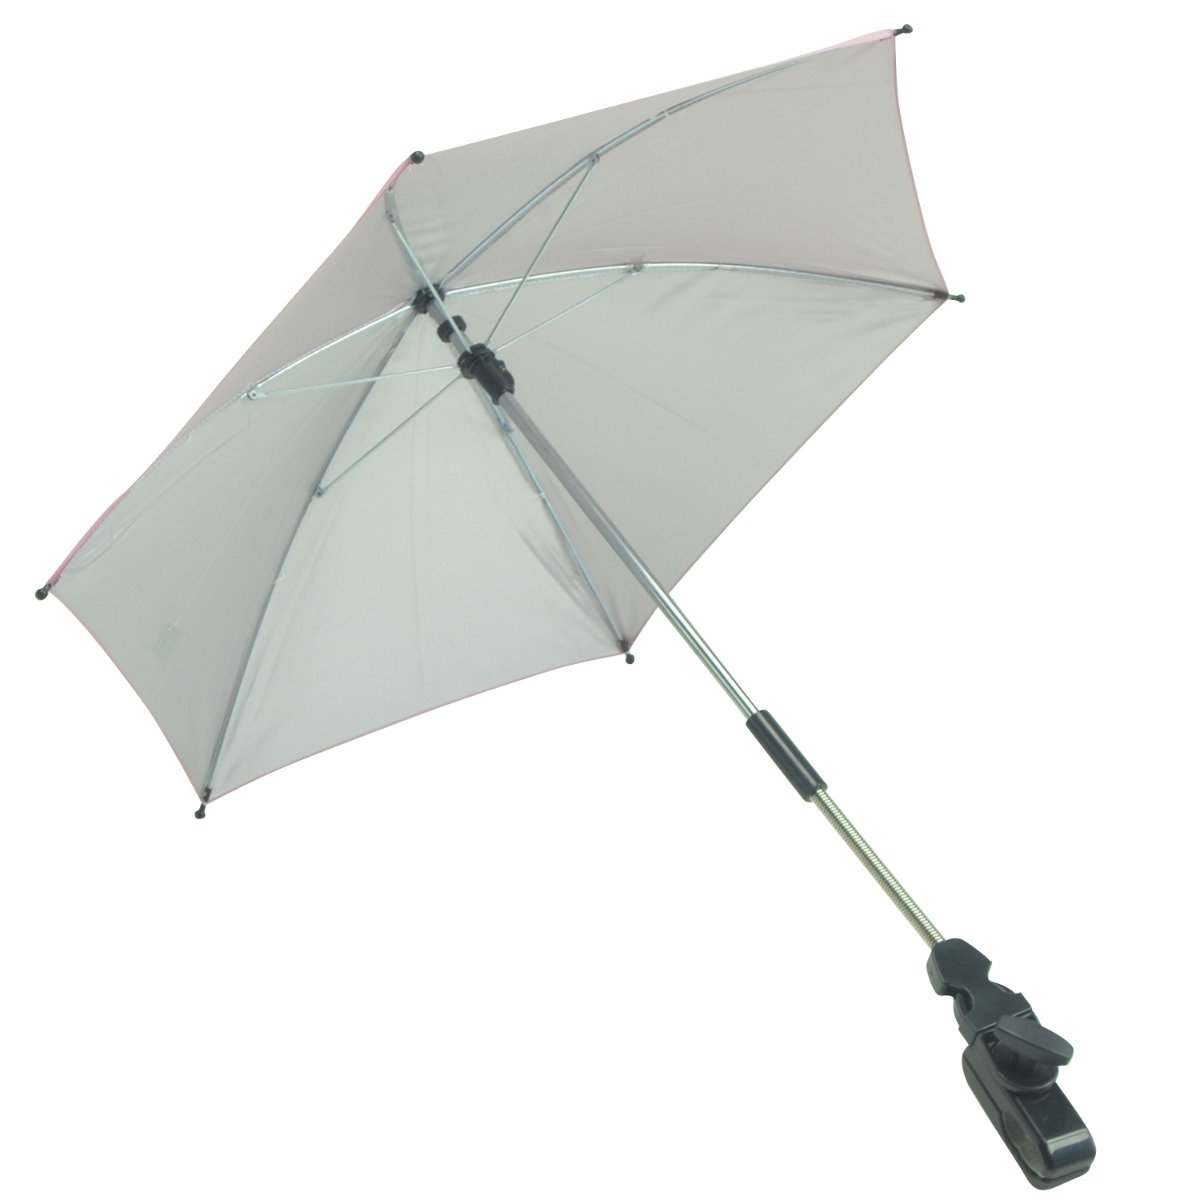 Baby-Parasol-Universal-Sun-Umbrella-Shade-Maker-Canopy-For-Pushchair-Pram-Buggy thumbnail 48